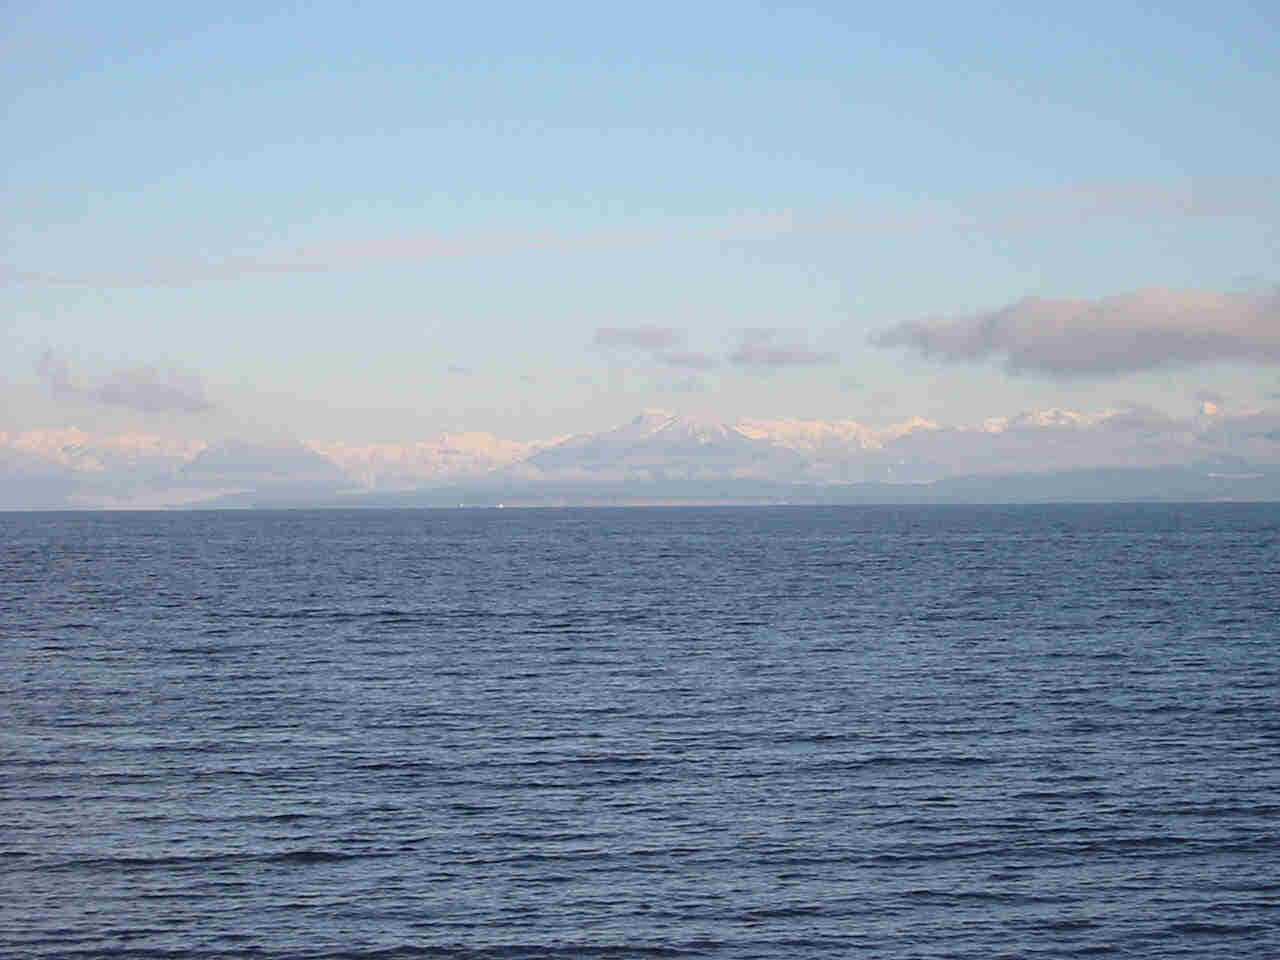 View of Copes' Islander Oceanfront bed and breakfast, Comox unterkunft Vancouver Island